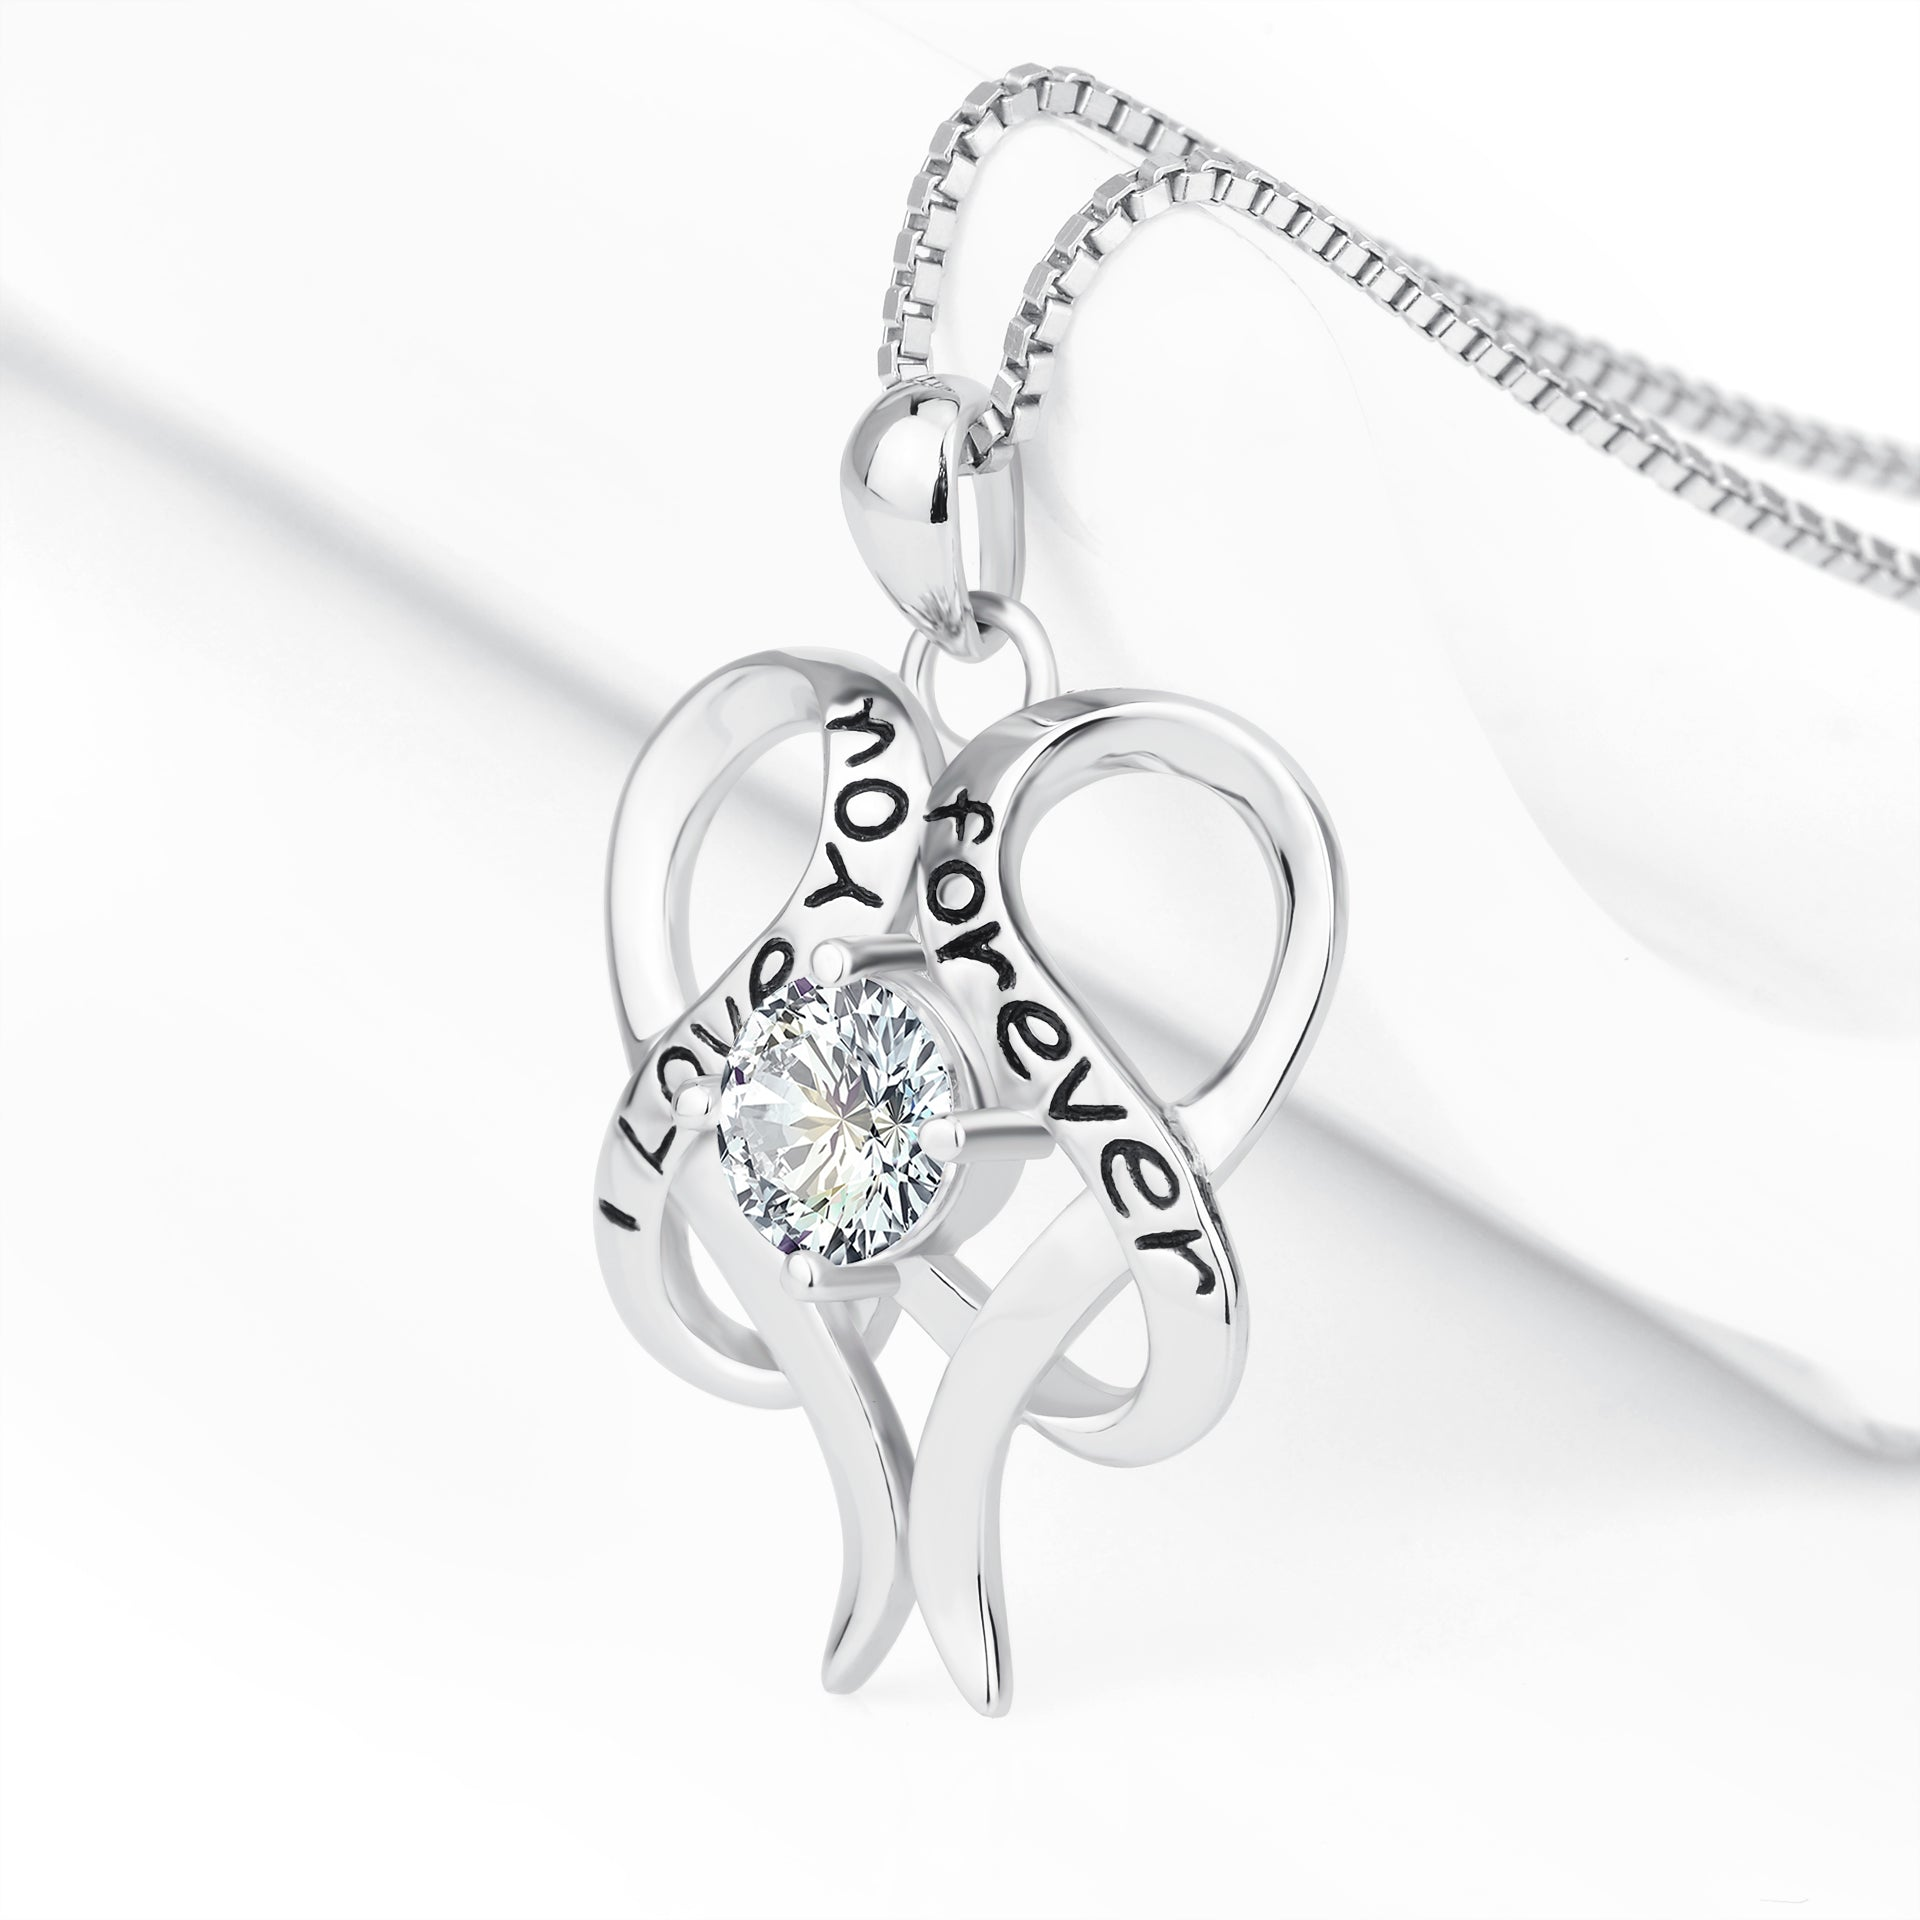 Mother Love You Forever Necklace Design Engraved Silver Jewelry Necklace